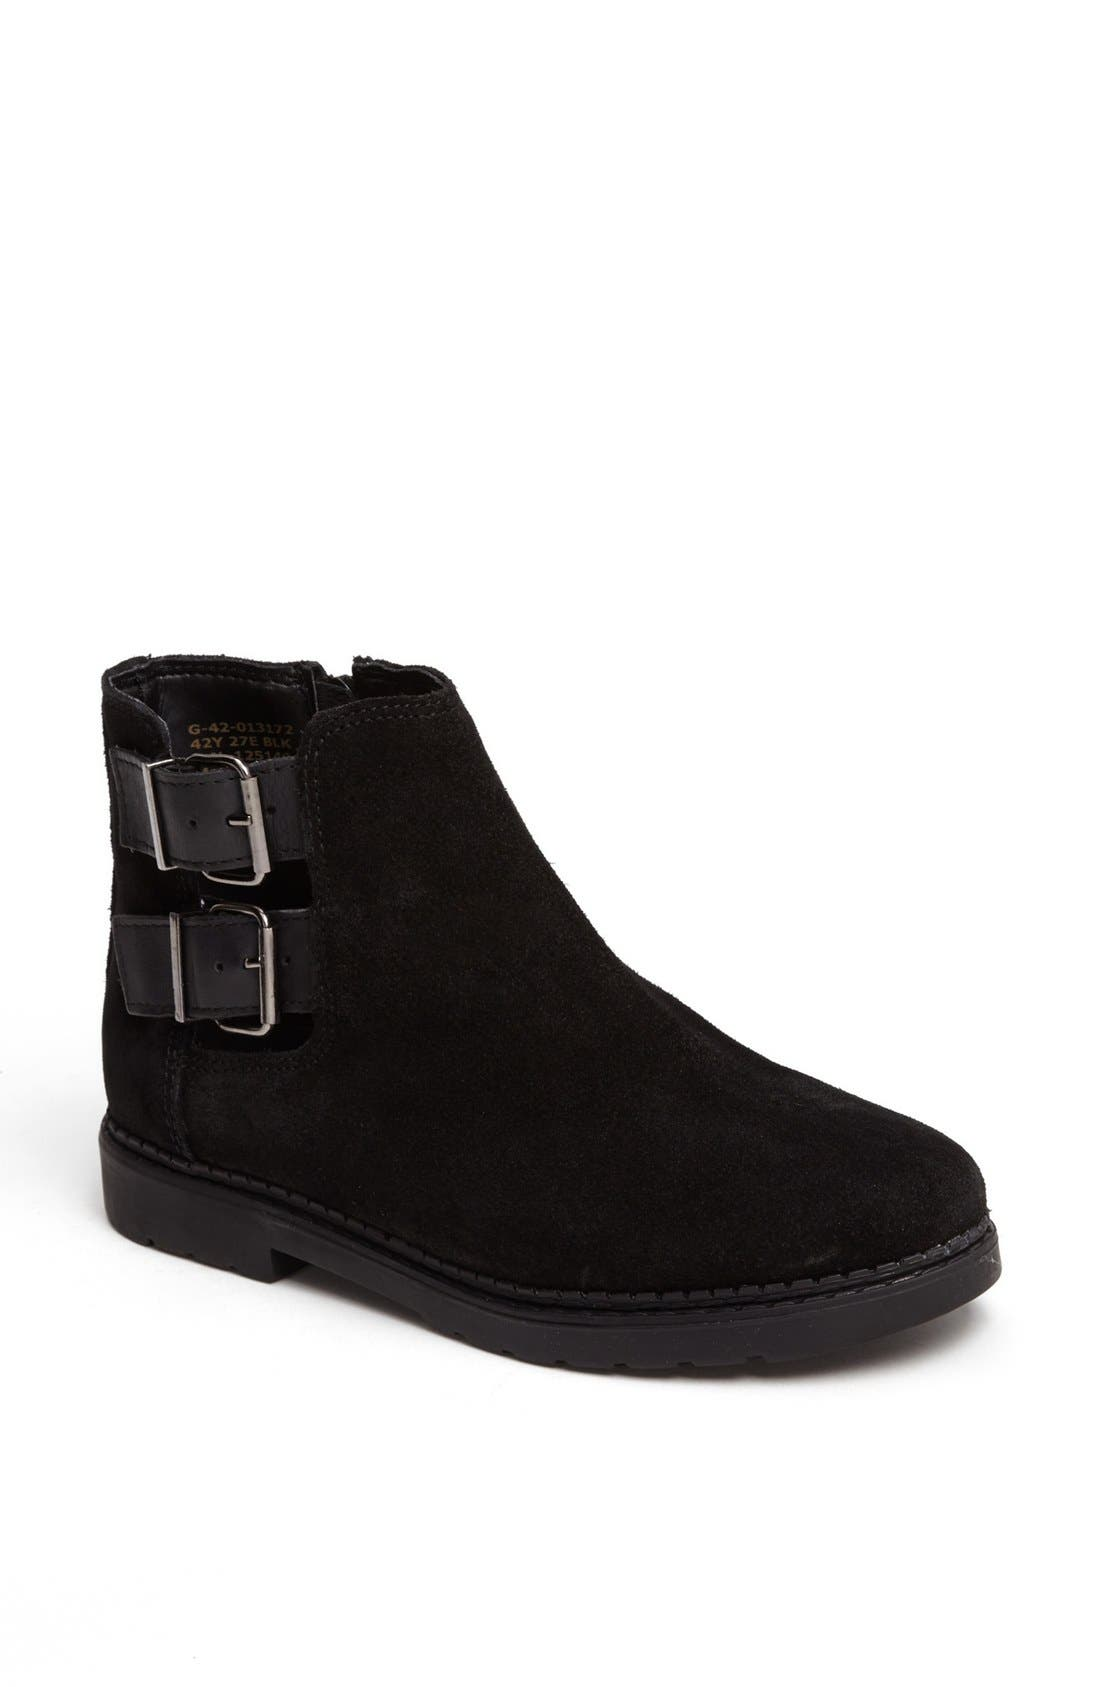 Main Image - Topshop 'Majestic' Cutout Suede Boots